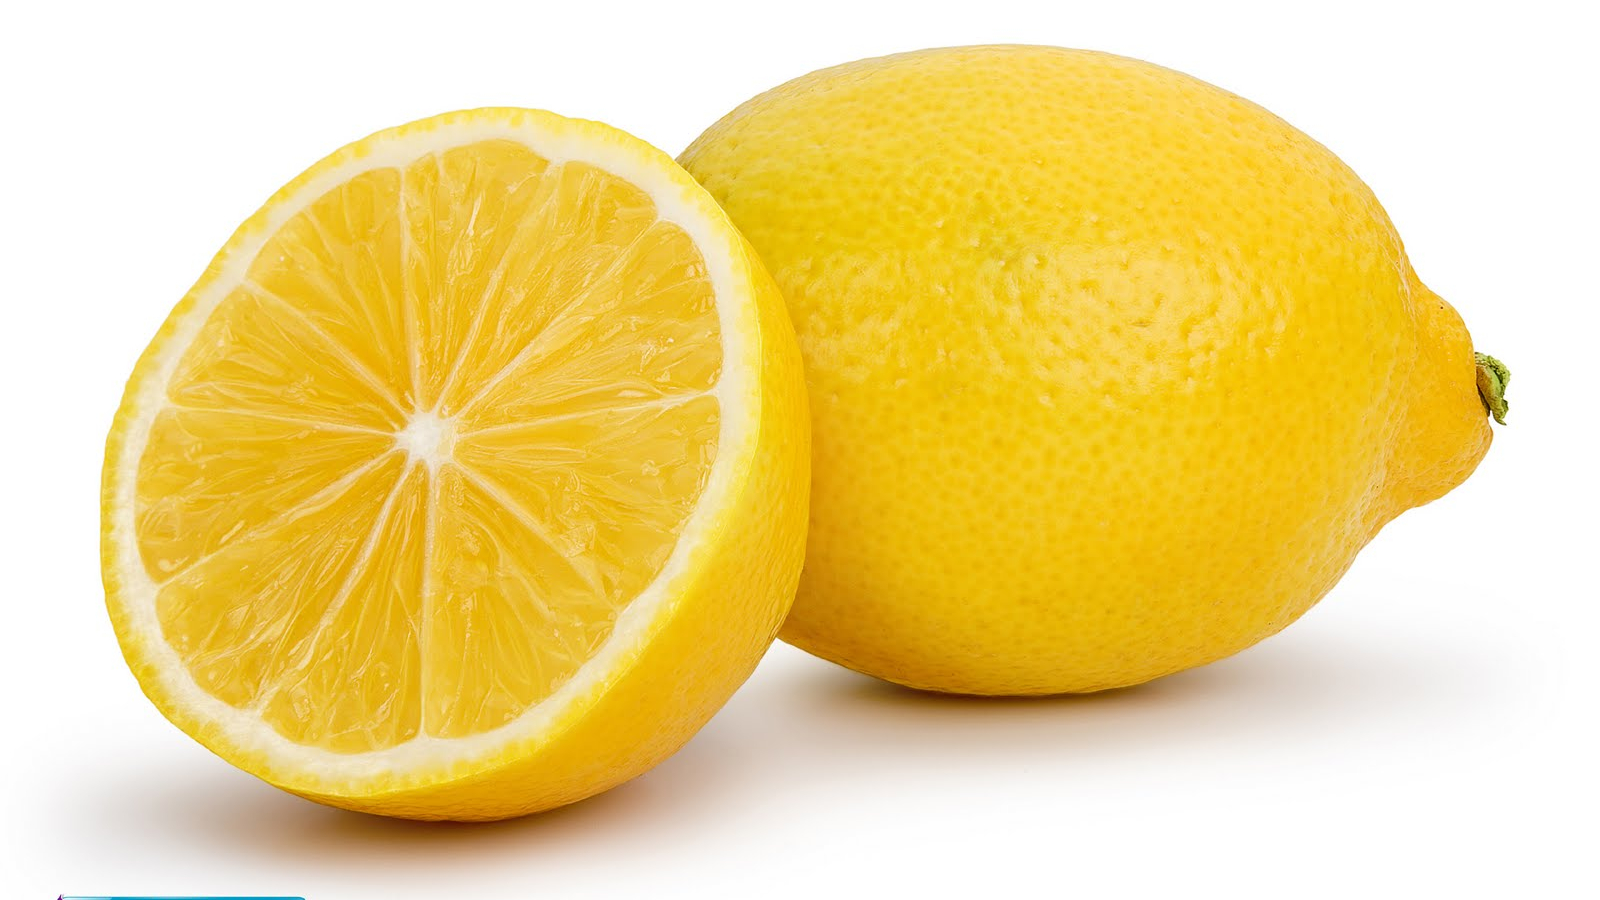 Free Download Cute Backgrounds And Wallpapers Fresh Lemon Hd